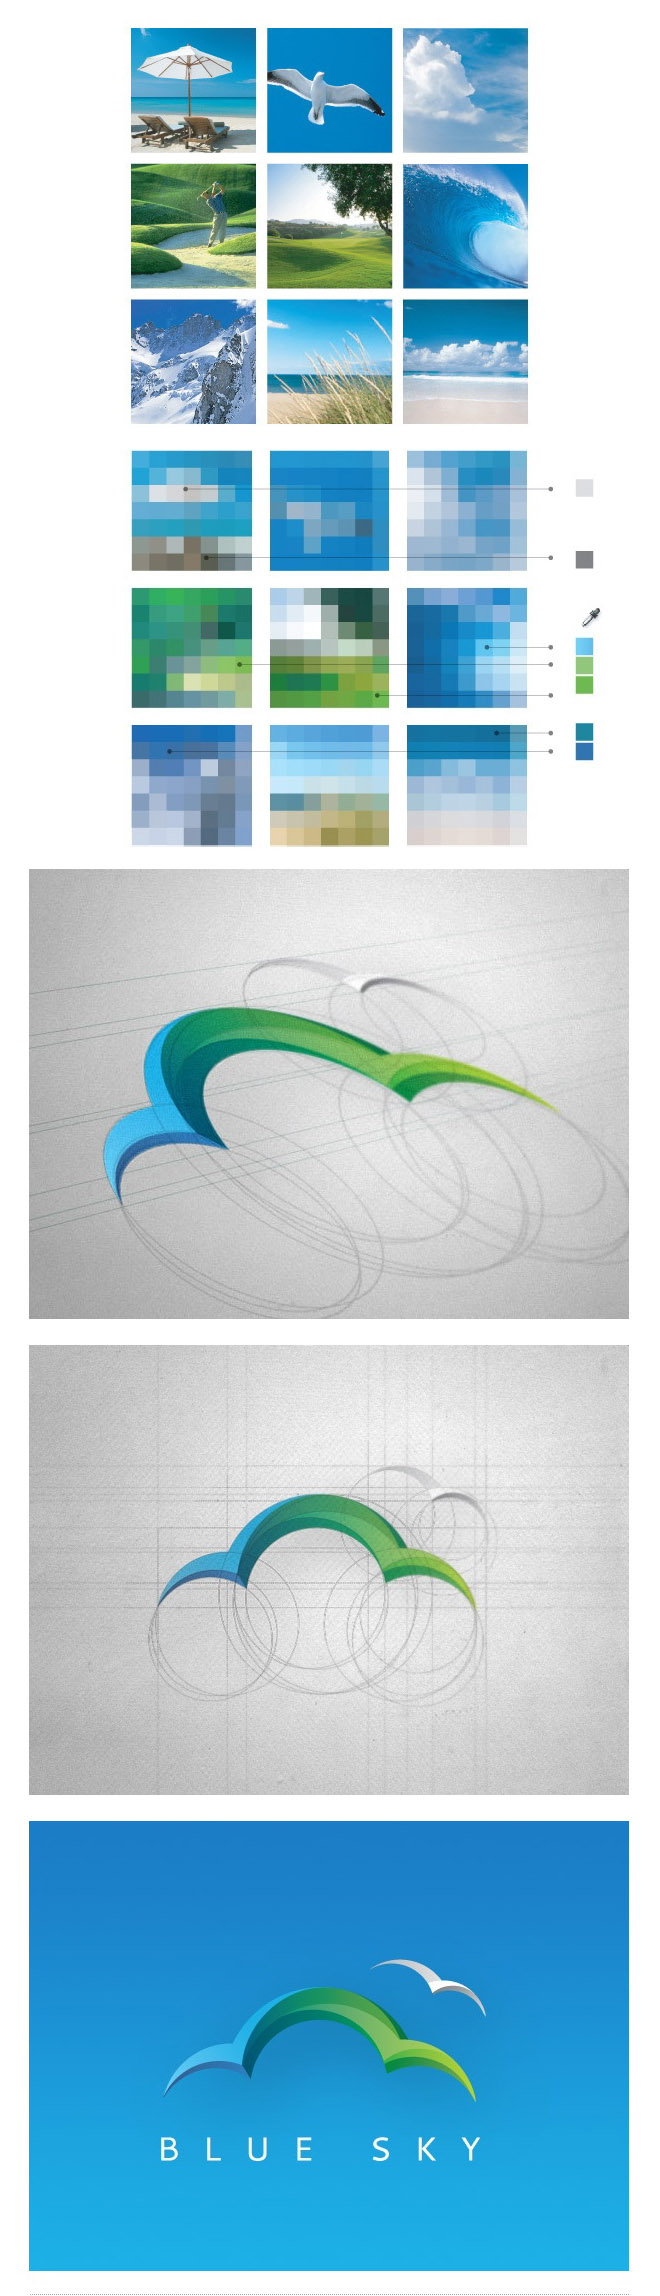 2-blue-sky-best-branding-design